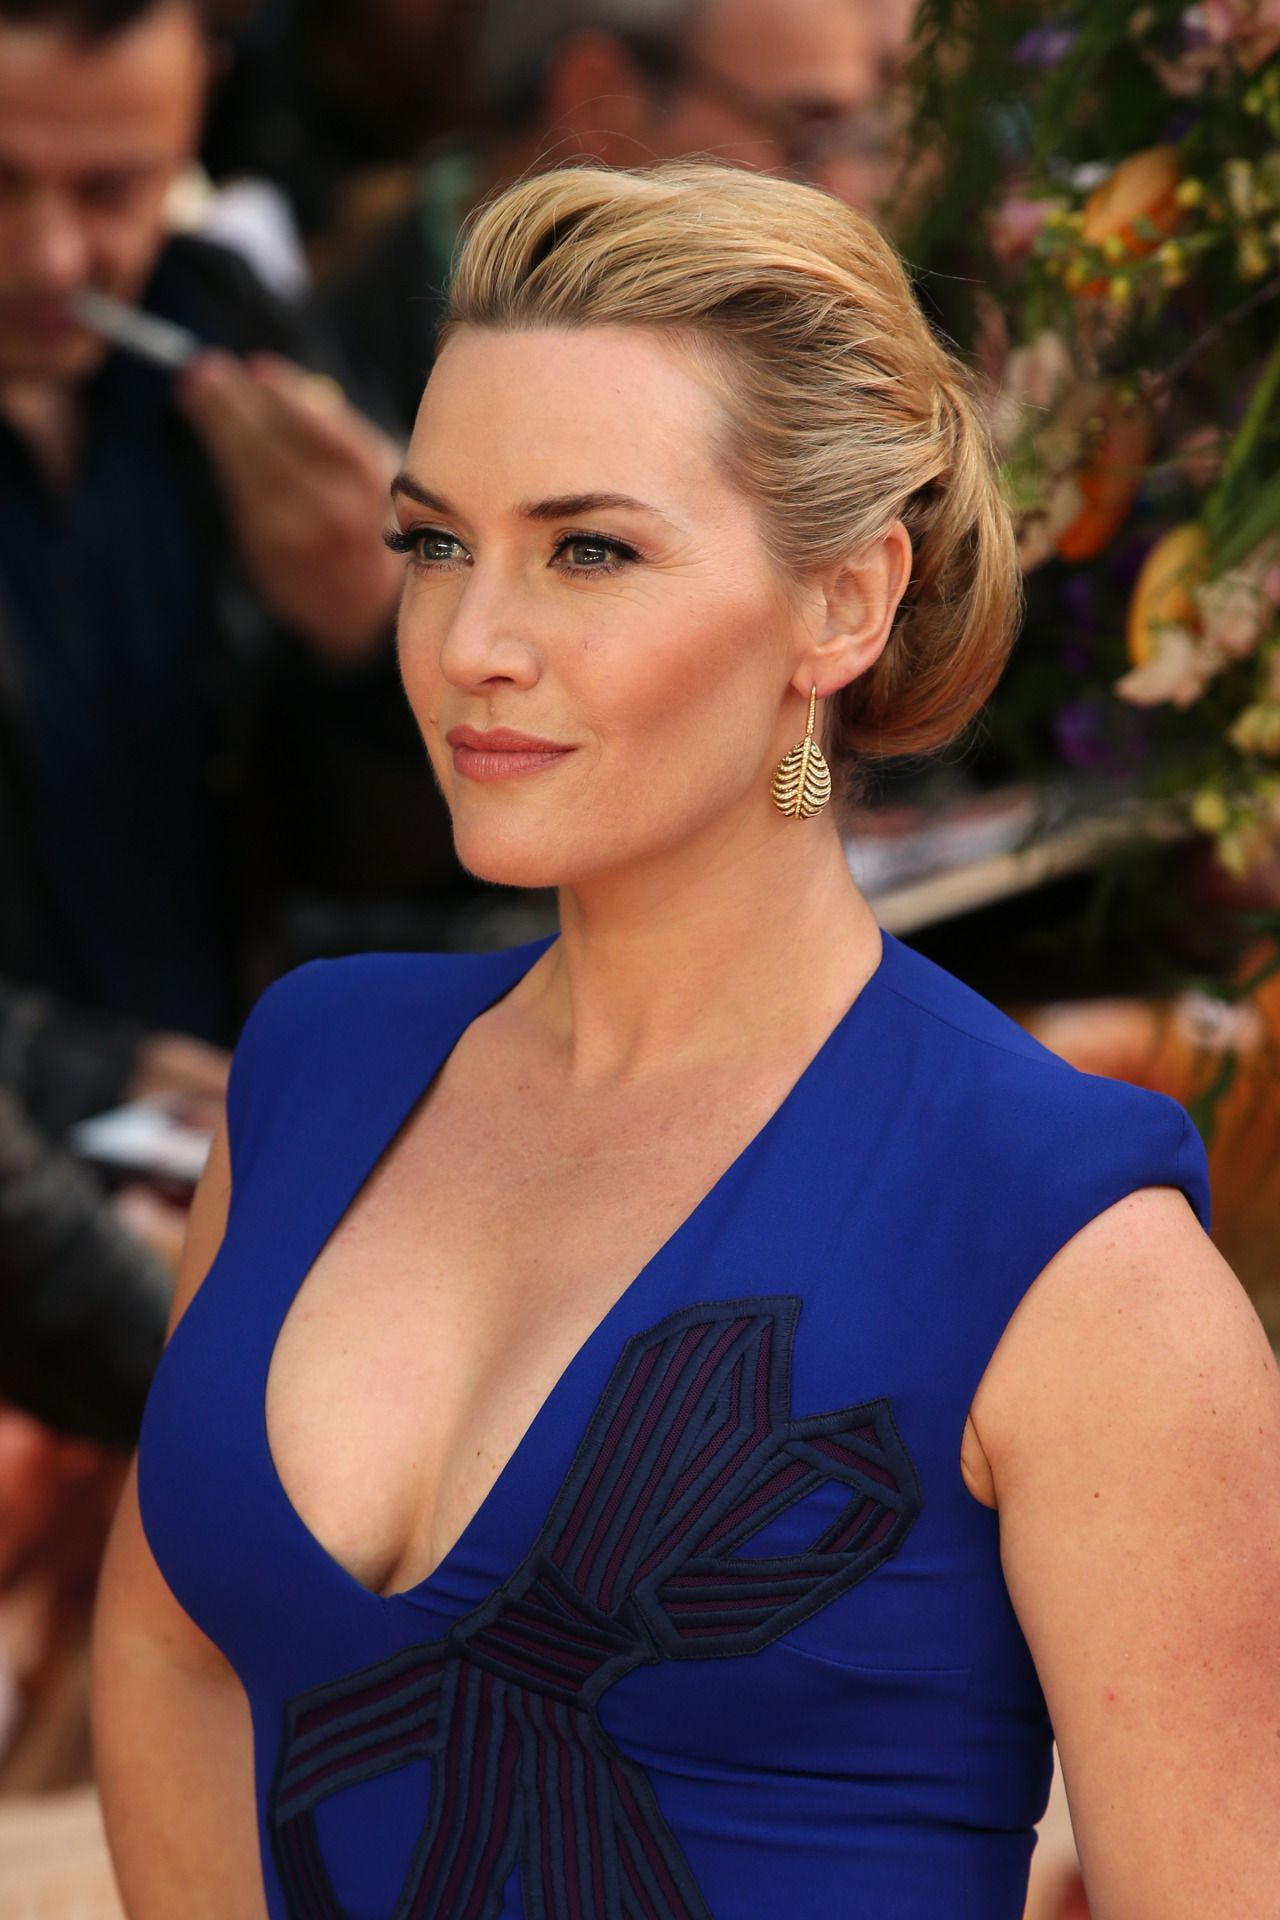 Kate winslet cleavage nude (99 photos), Twitter Celebrity fotos